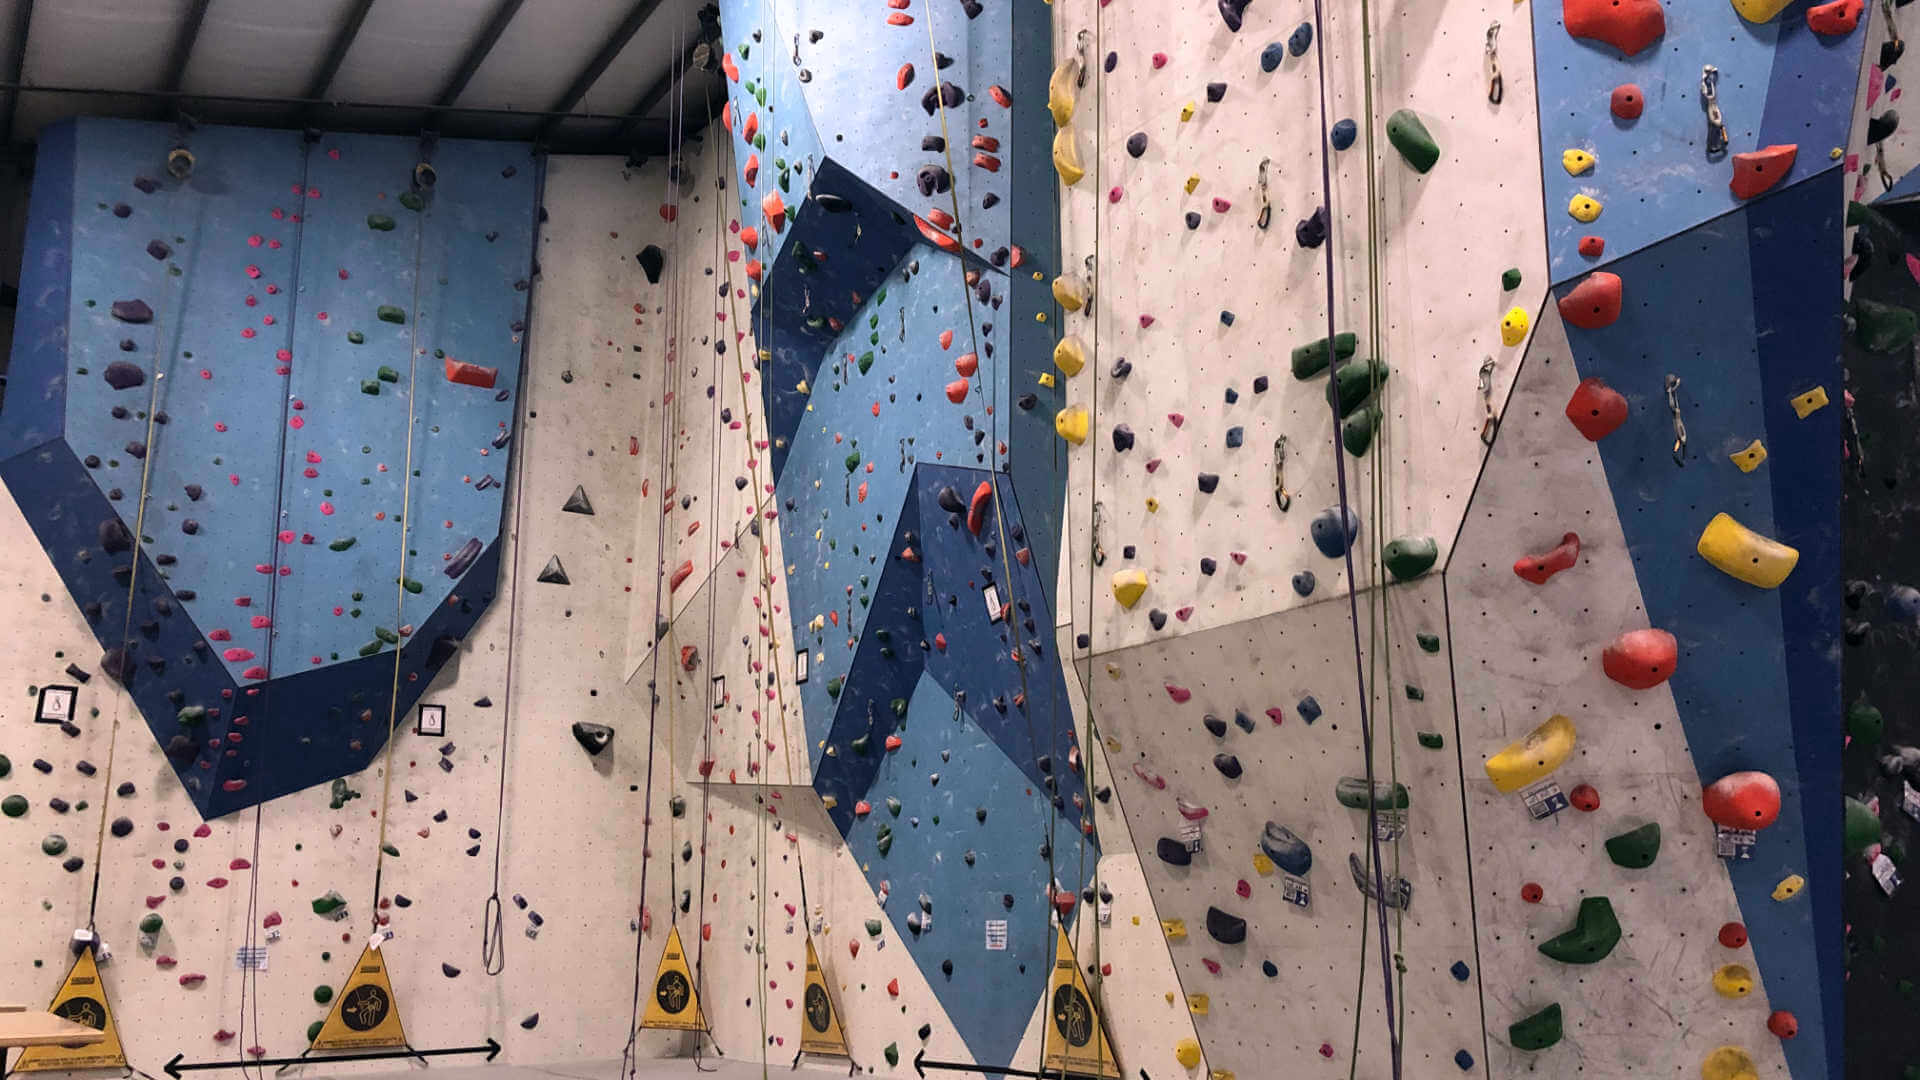 Our rock climbing gym was back to operating with distancing and masking requirements to boot! Just happy to be back on the wall.